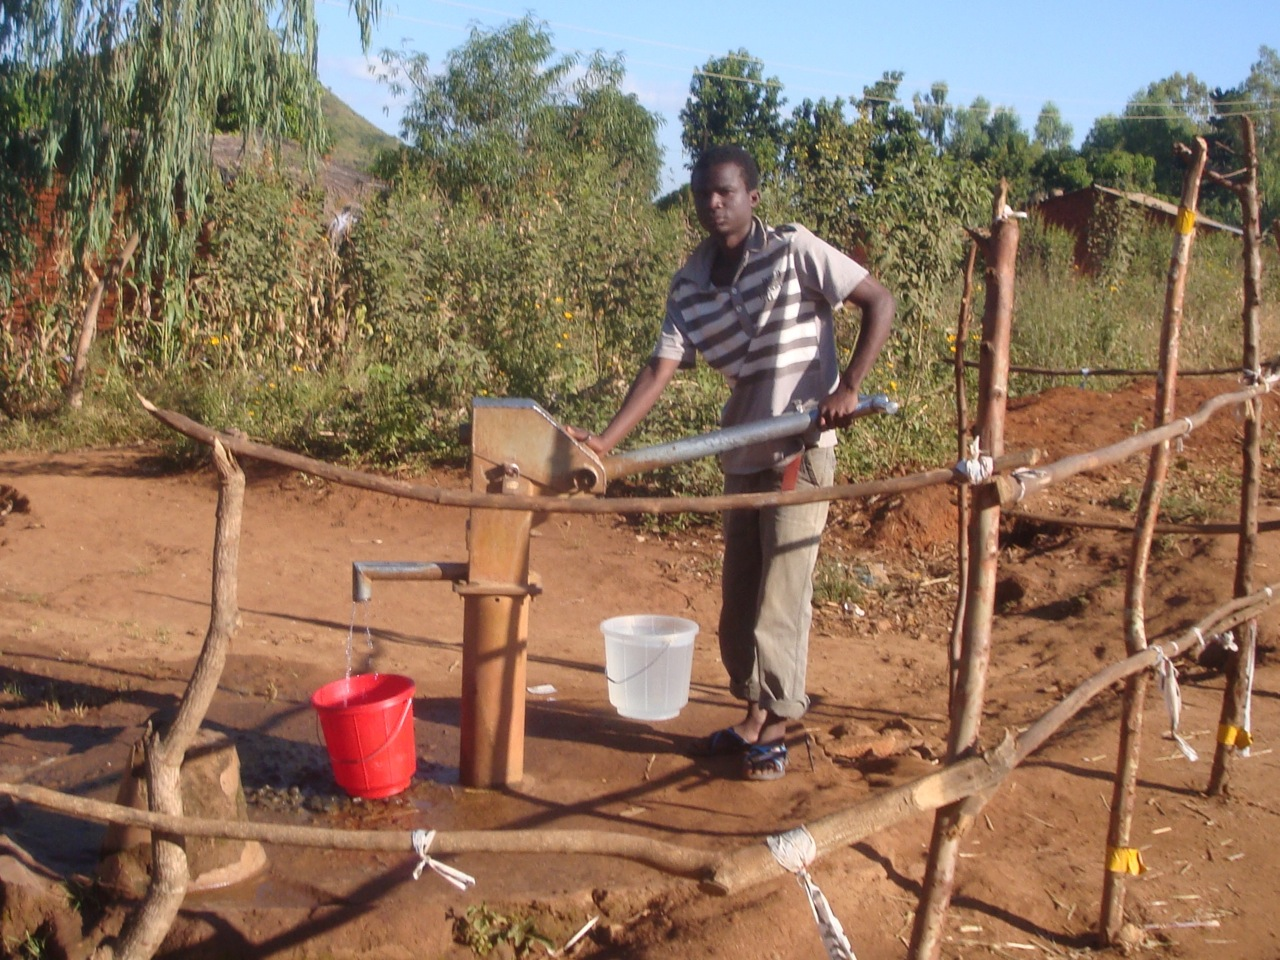 Putting in a bore & pump is the easy bit. What is harder is ensuring that people can access it, that there is a management committee of those that use it, that they can raise money for spare parts, that spare parts are available etc. etc.